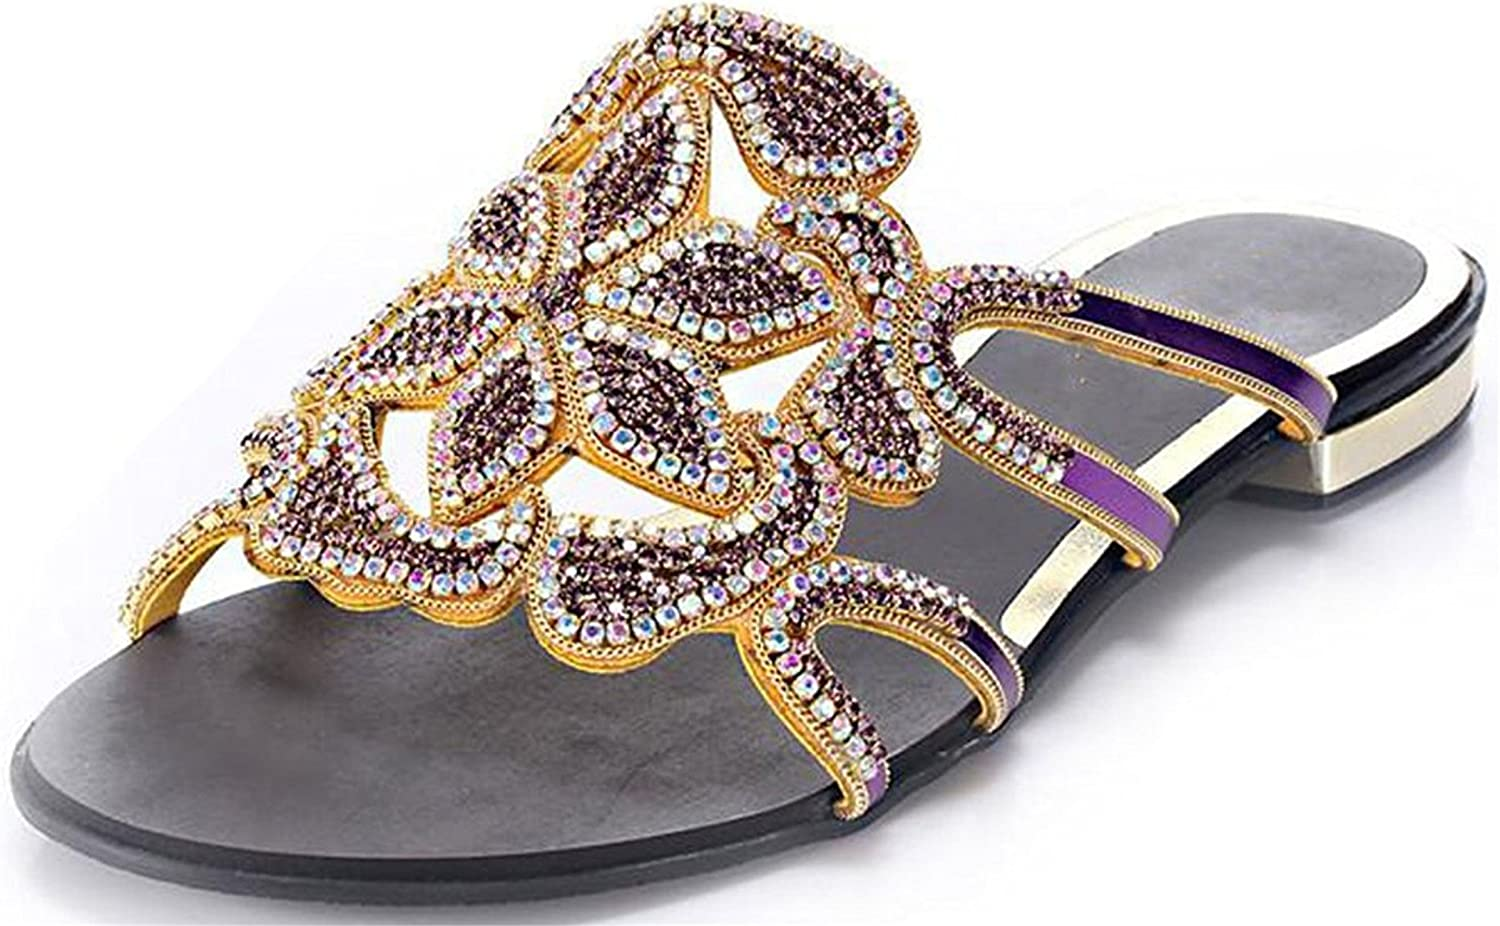 Garyline Cutouts Flat Sandal Floral Crystal Studded Leather Slip On Strappy Sandal Grape